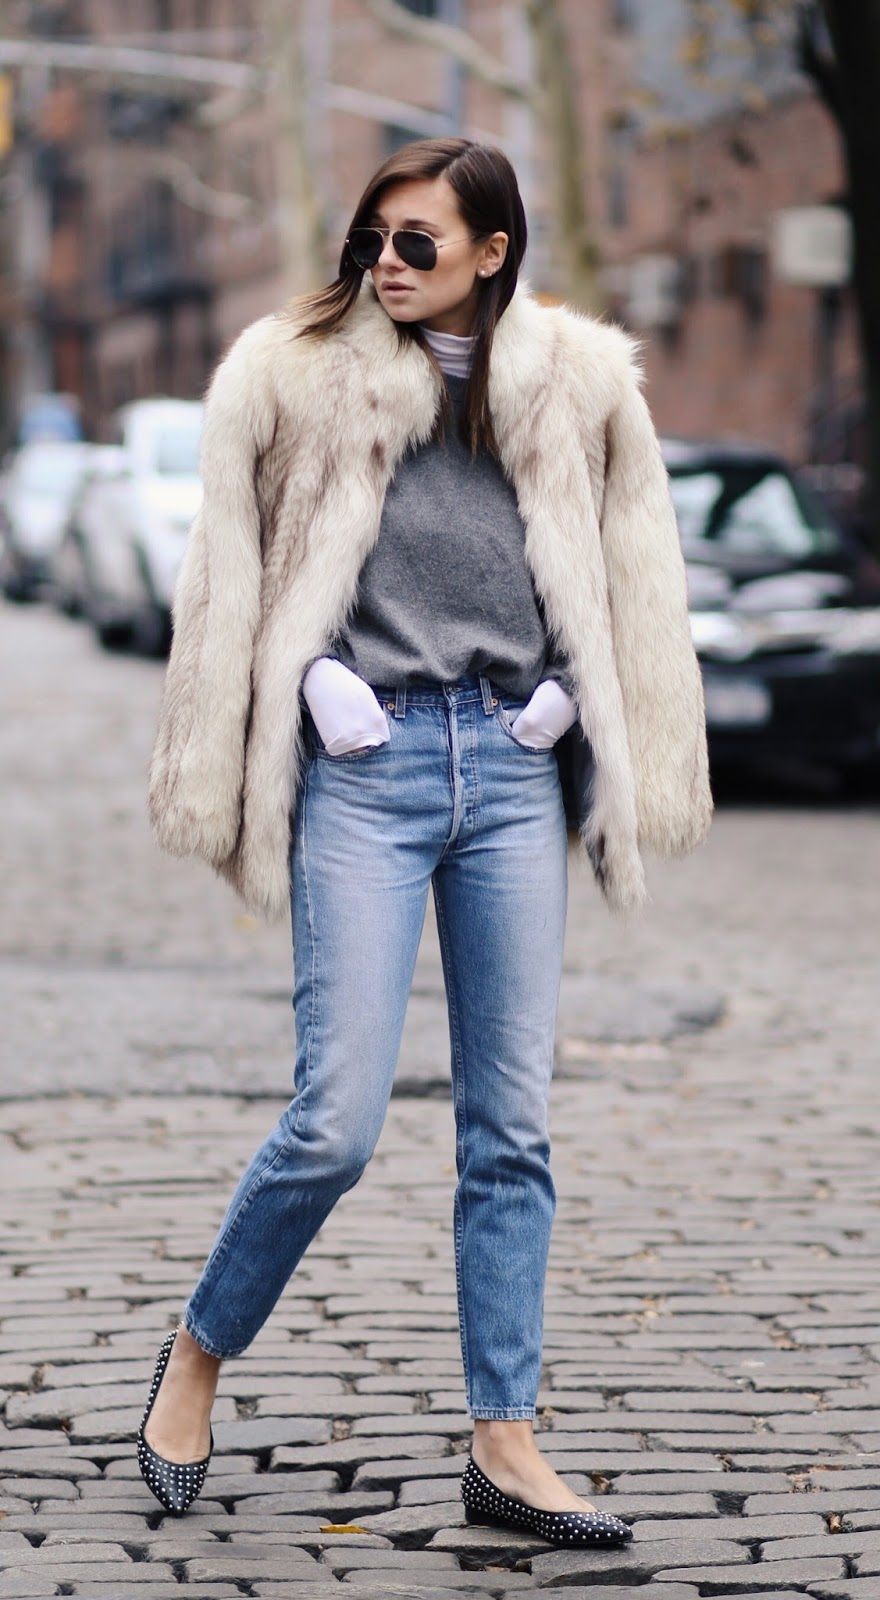 Fuzzy Winter Women Fashion Trends 2016